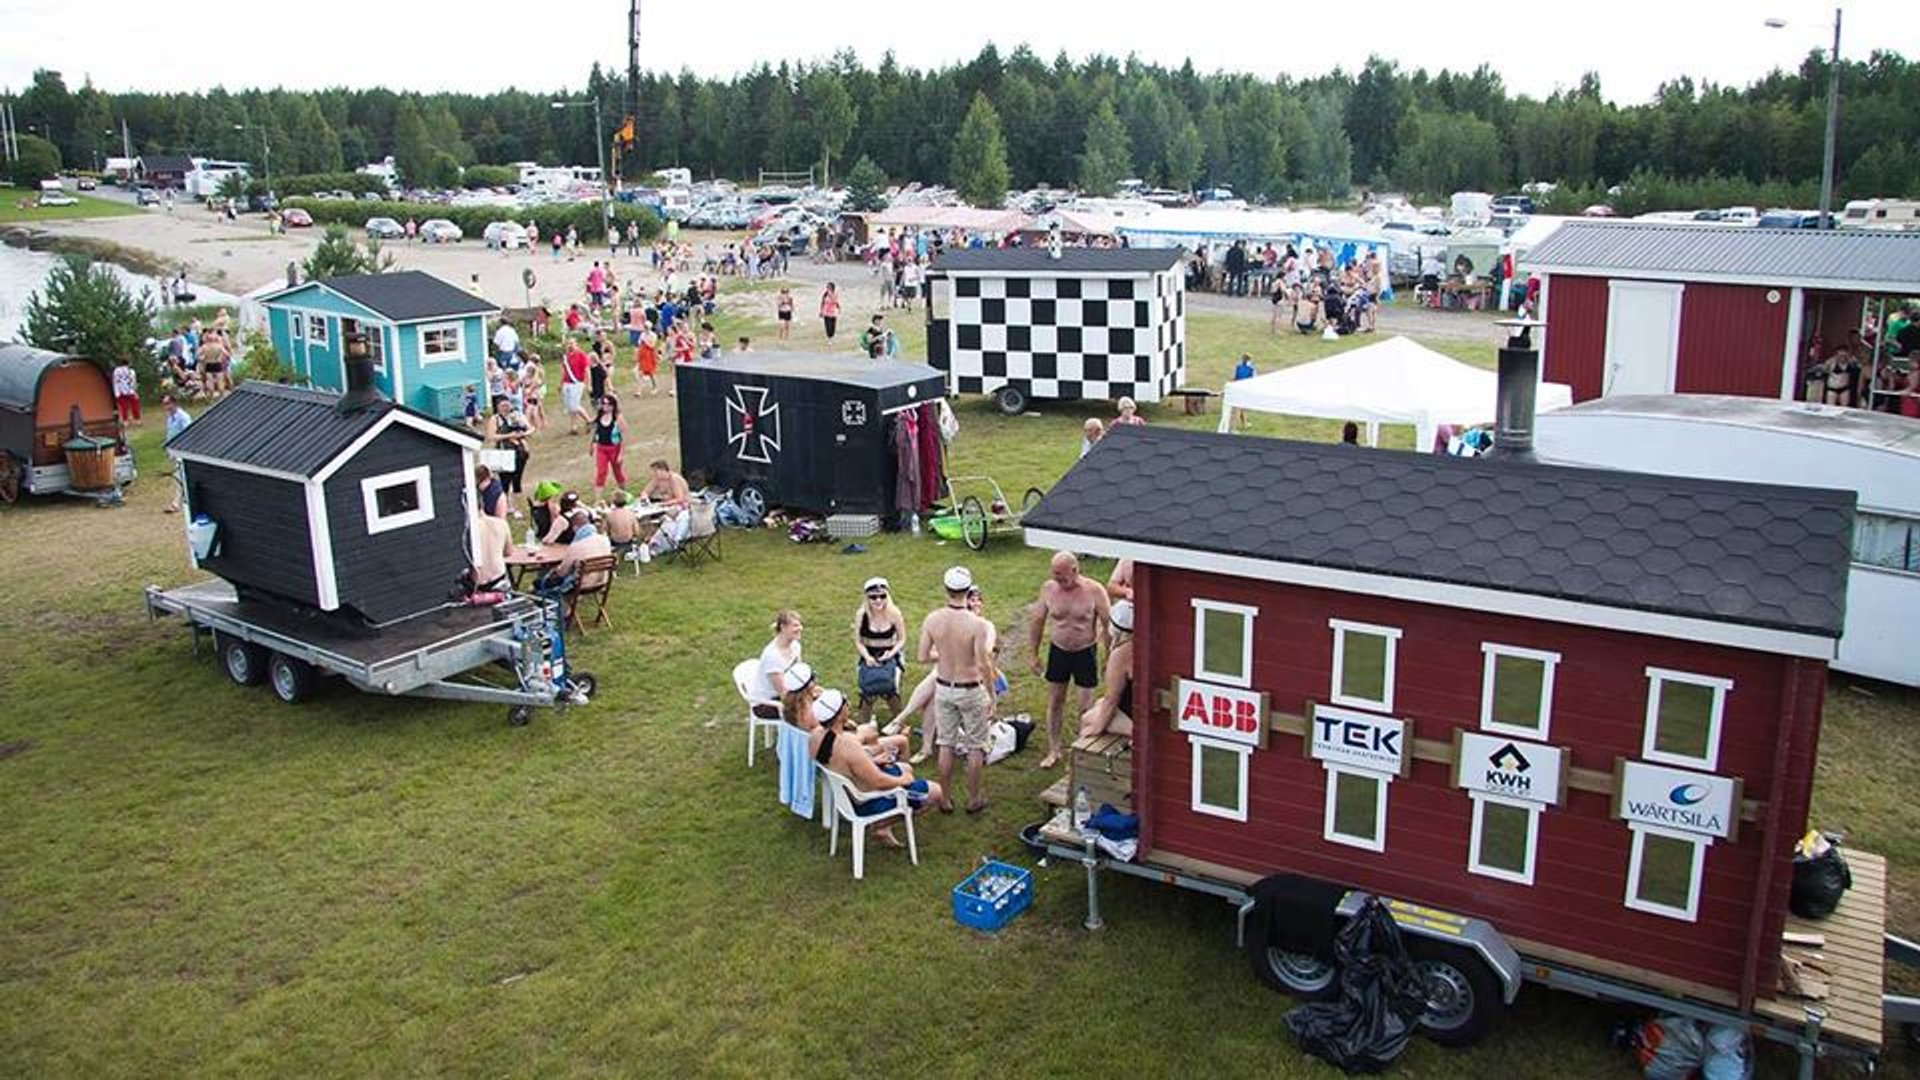 Mobile Sauna Festival in Teuva in Finland - Best Time